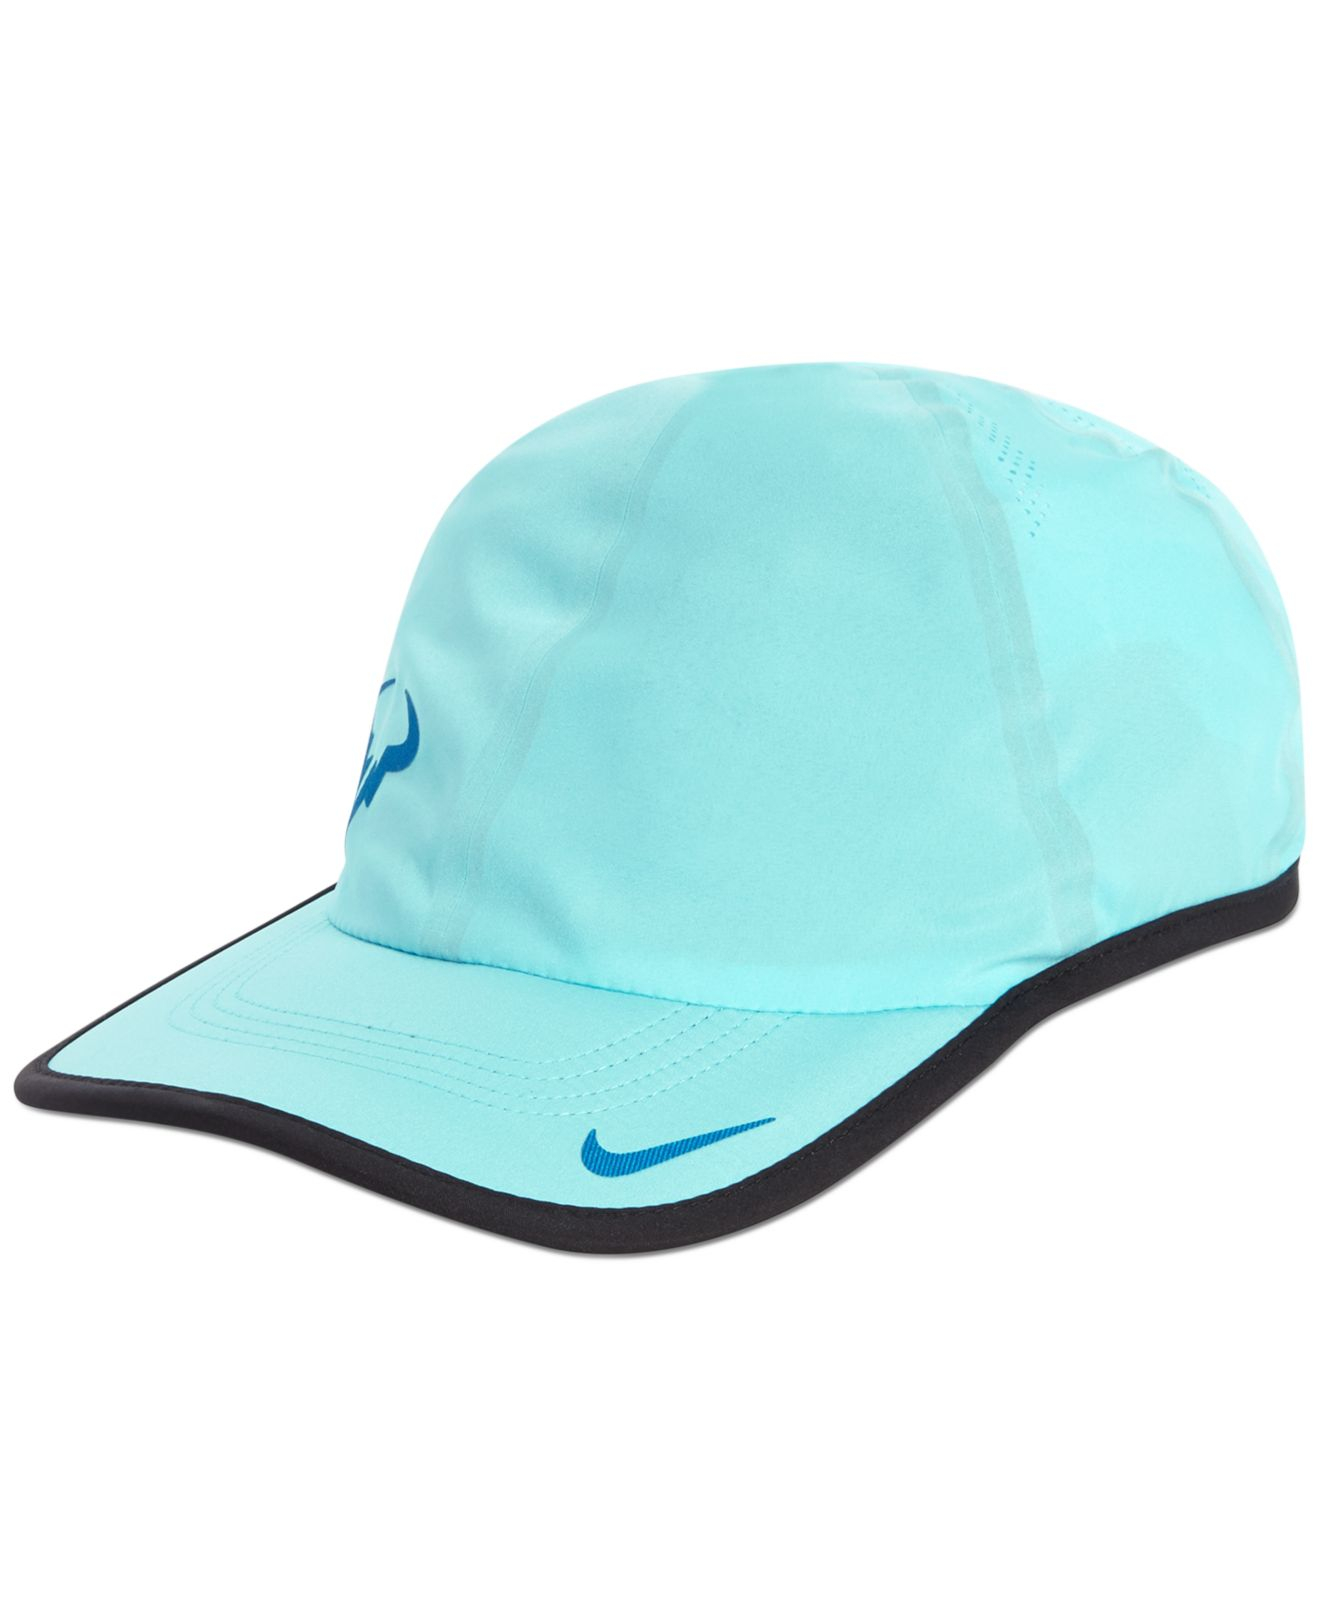 2aae12879e133 Lyst - Nike Rafa Bull Logo 2.0 Cap in Blue for Men